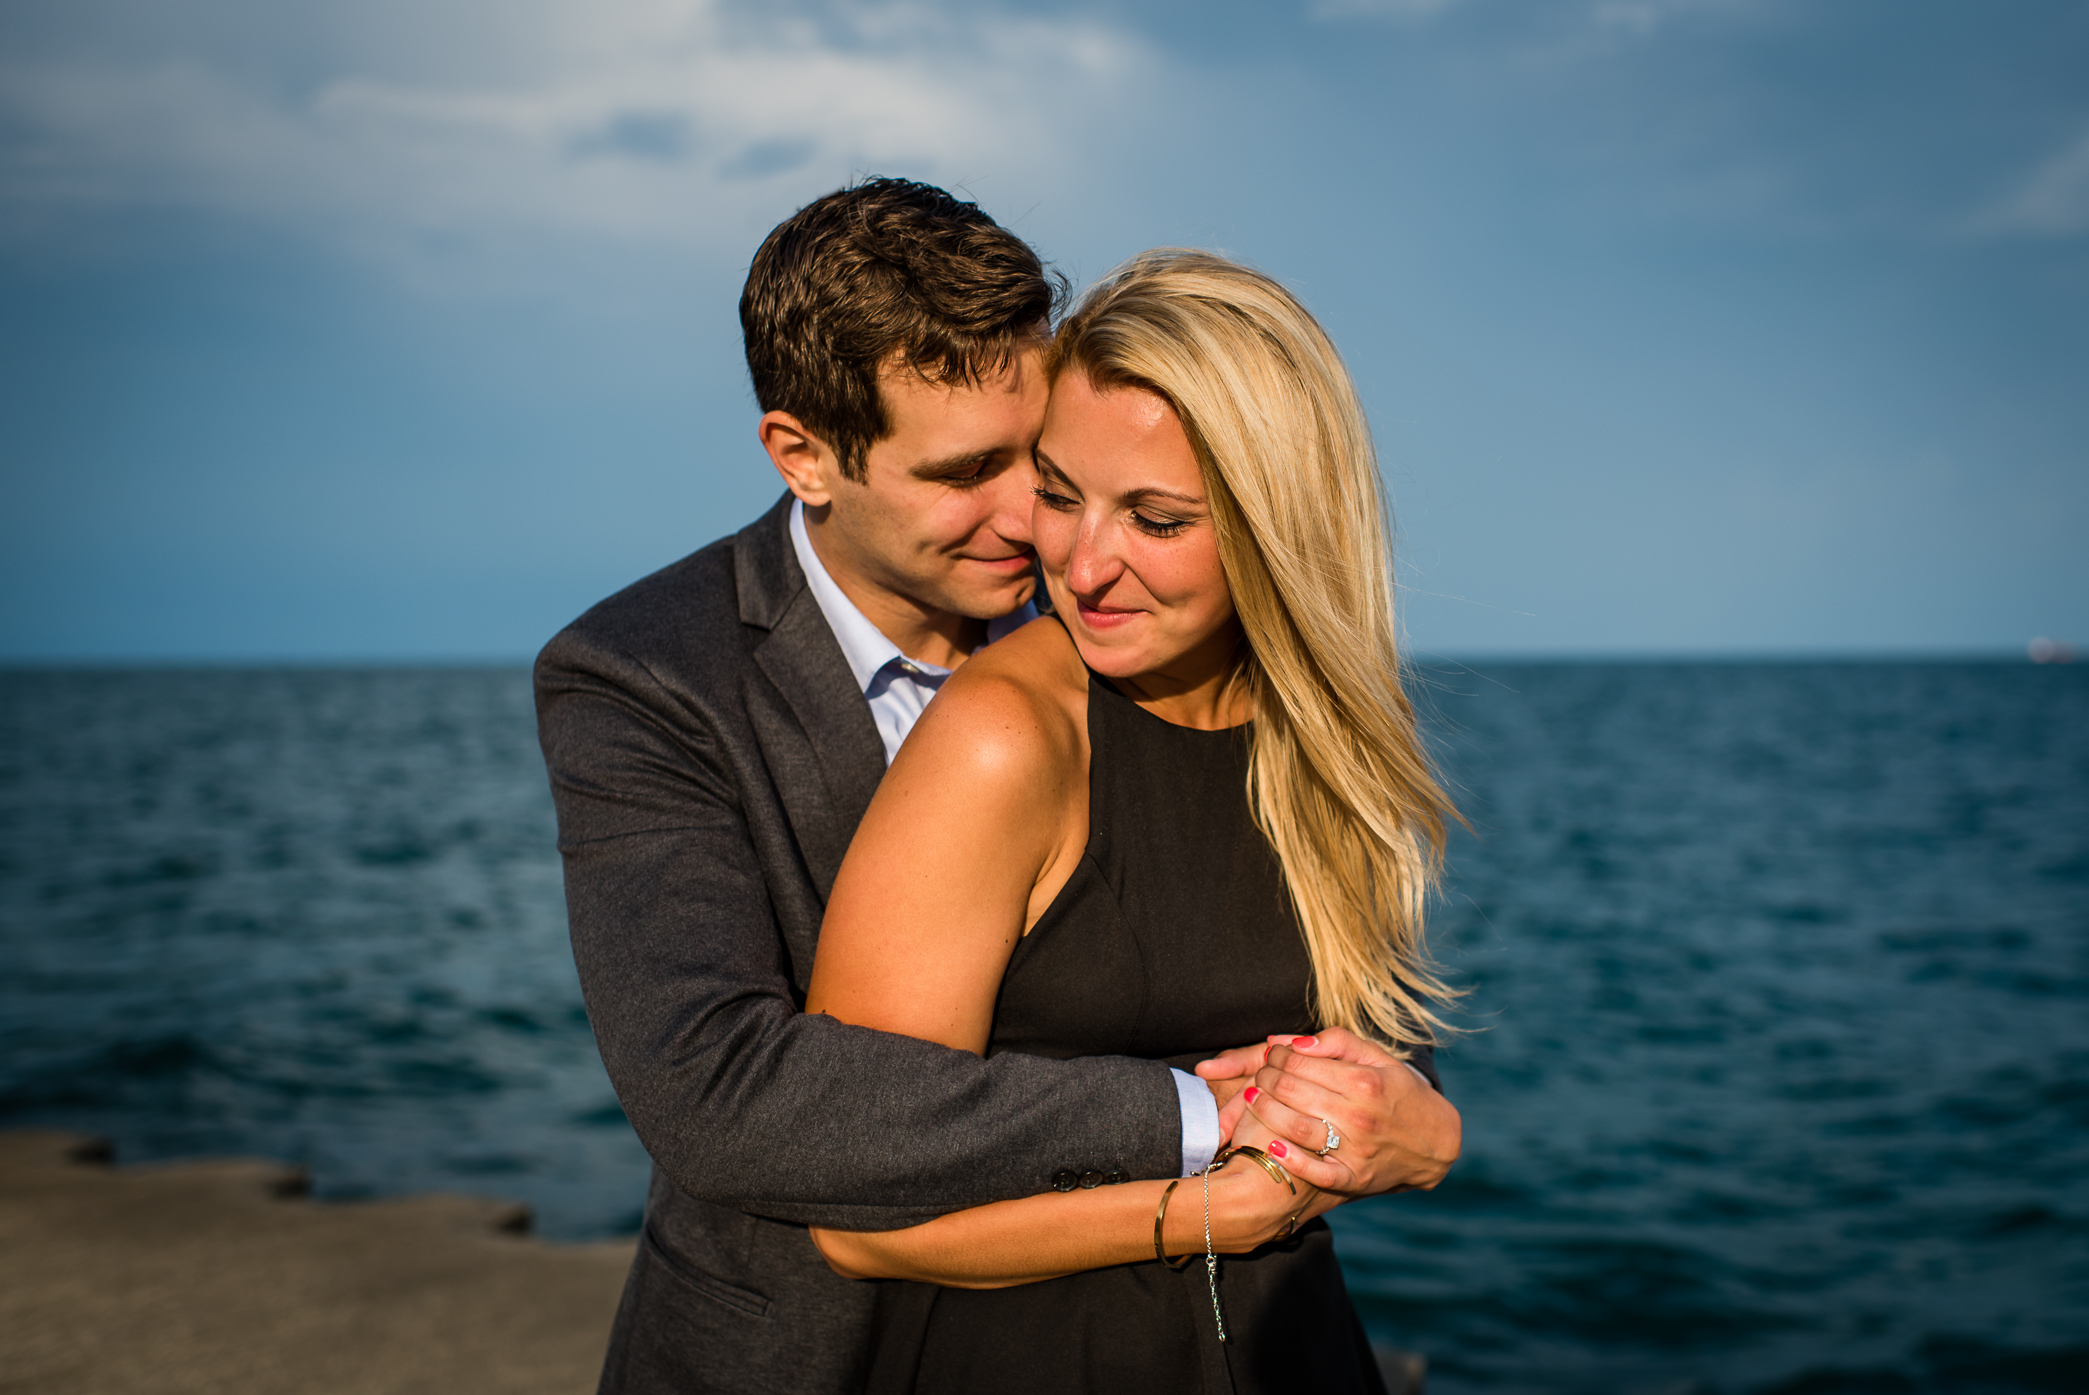 heather hackney photography www.heatherhackney.com chicago engagement chicago sunset proposal diversy harbor chicago--25.jpg